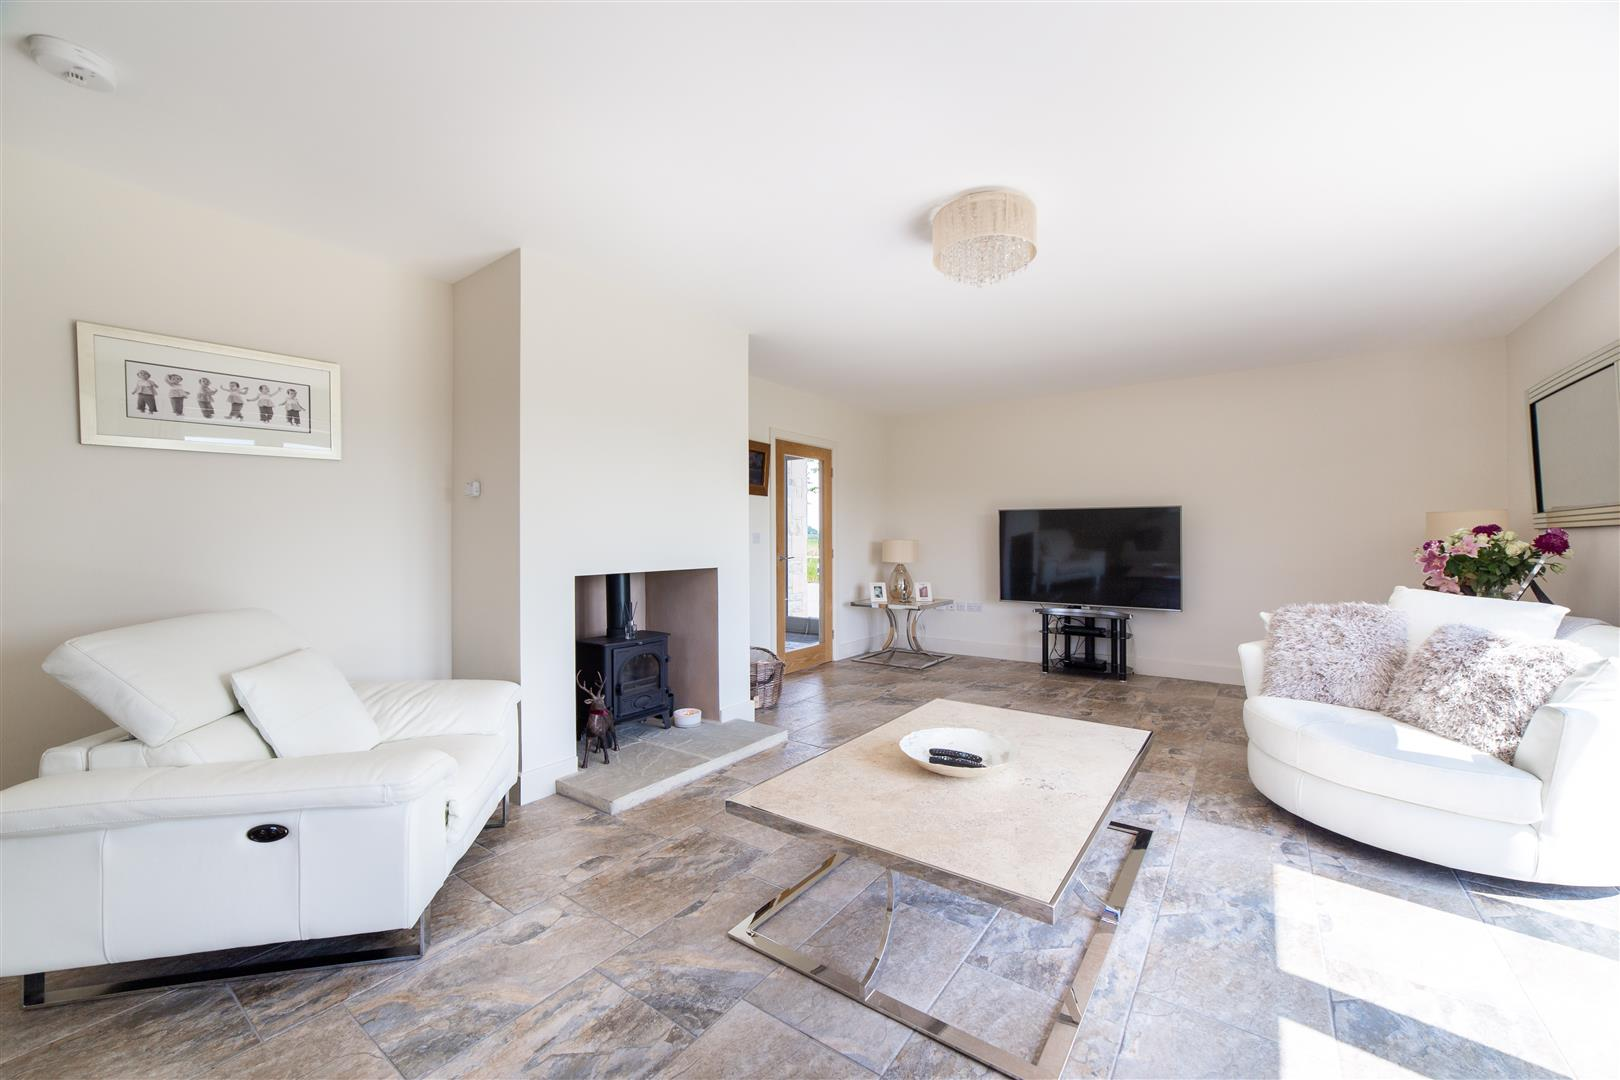 4 bed detached house for sale, Hexham  - Property Image 24